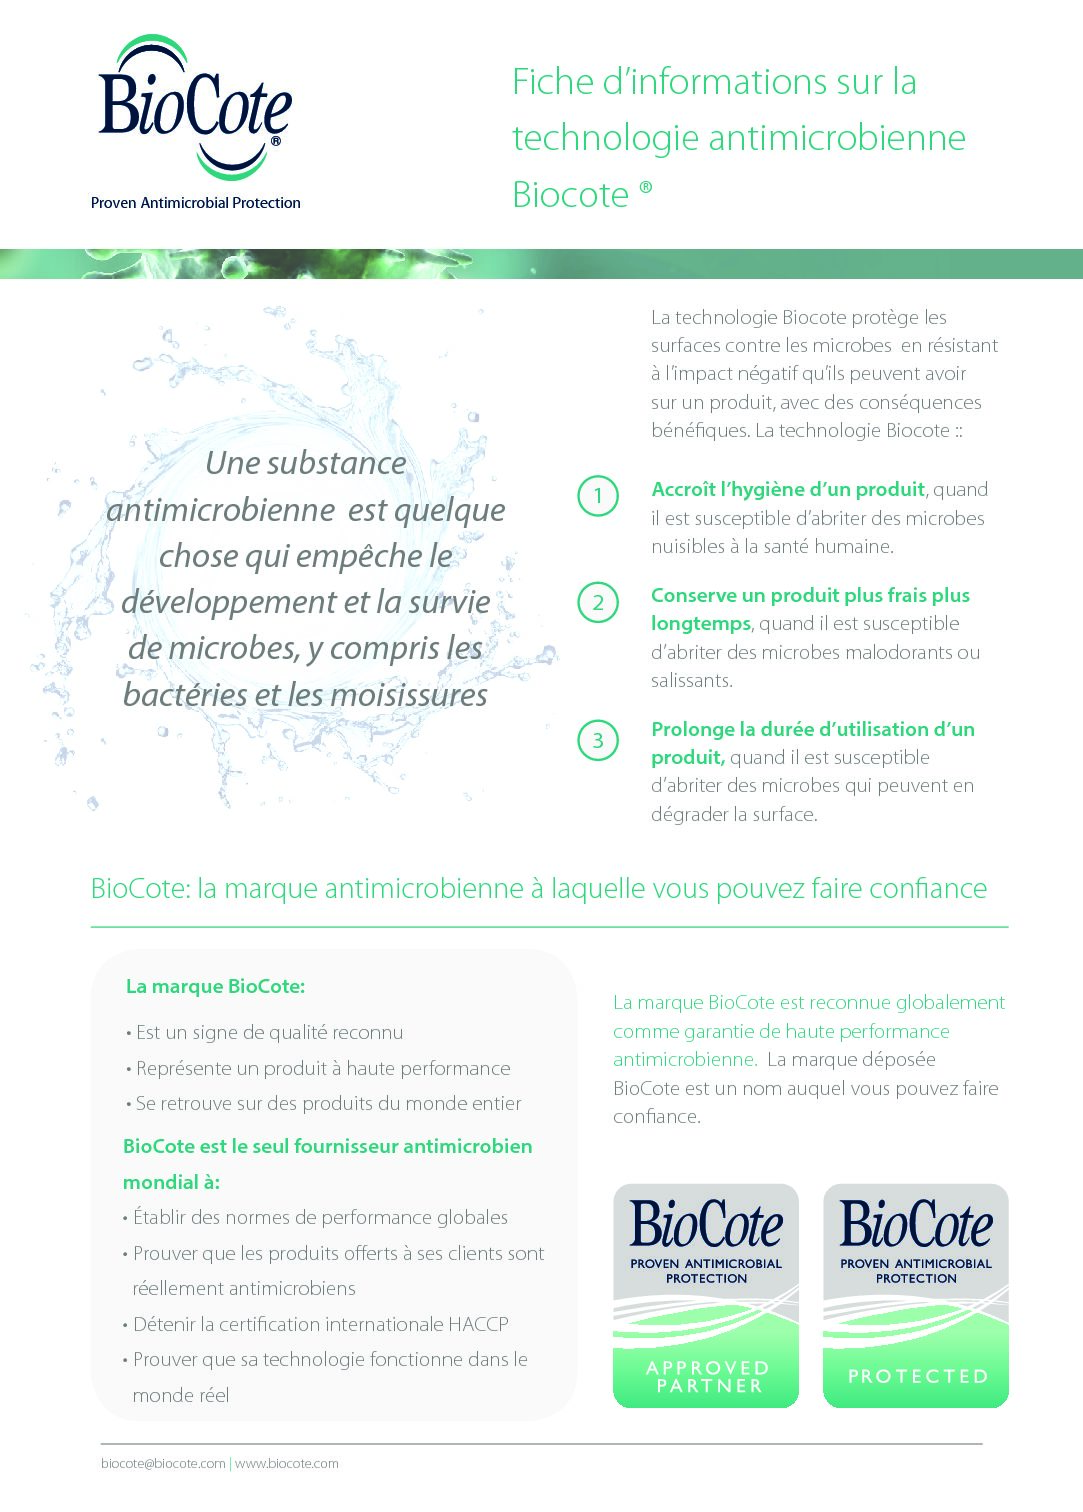 BioCote Fact Sheet (French)